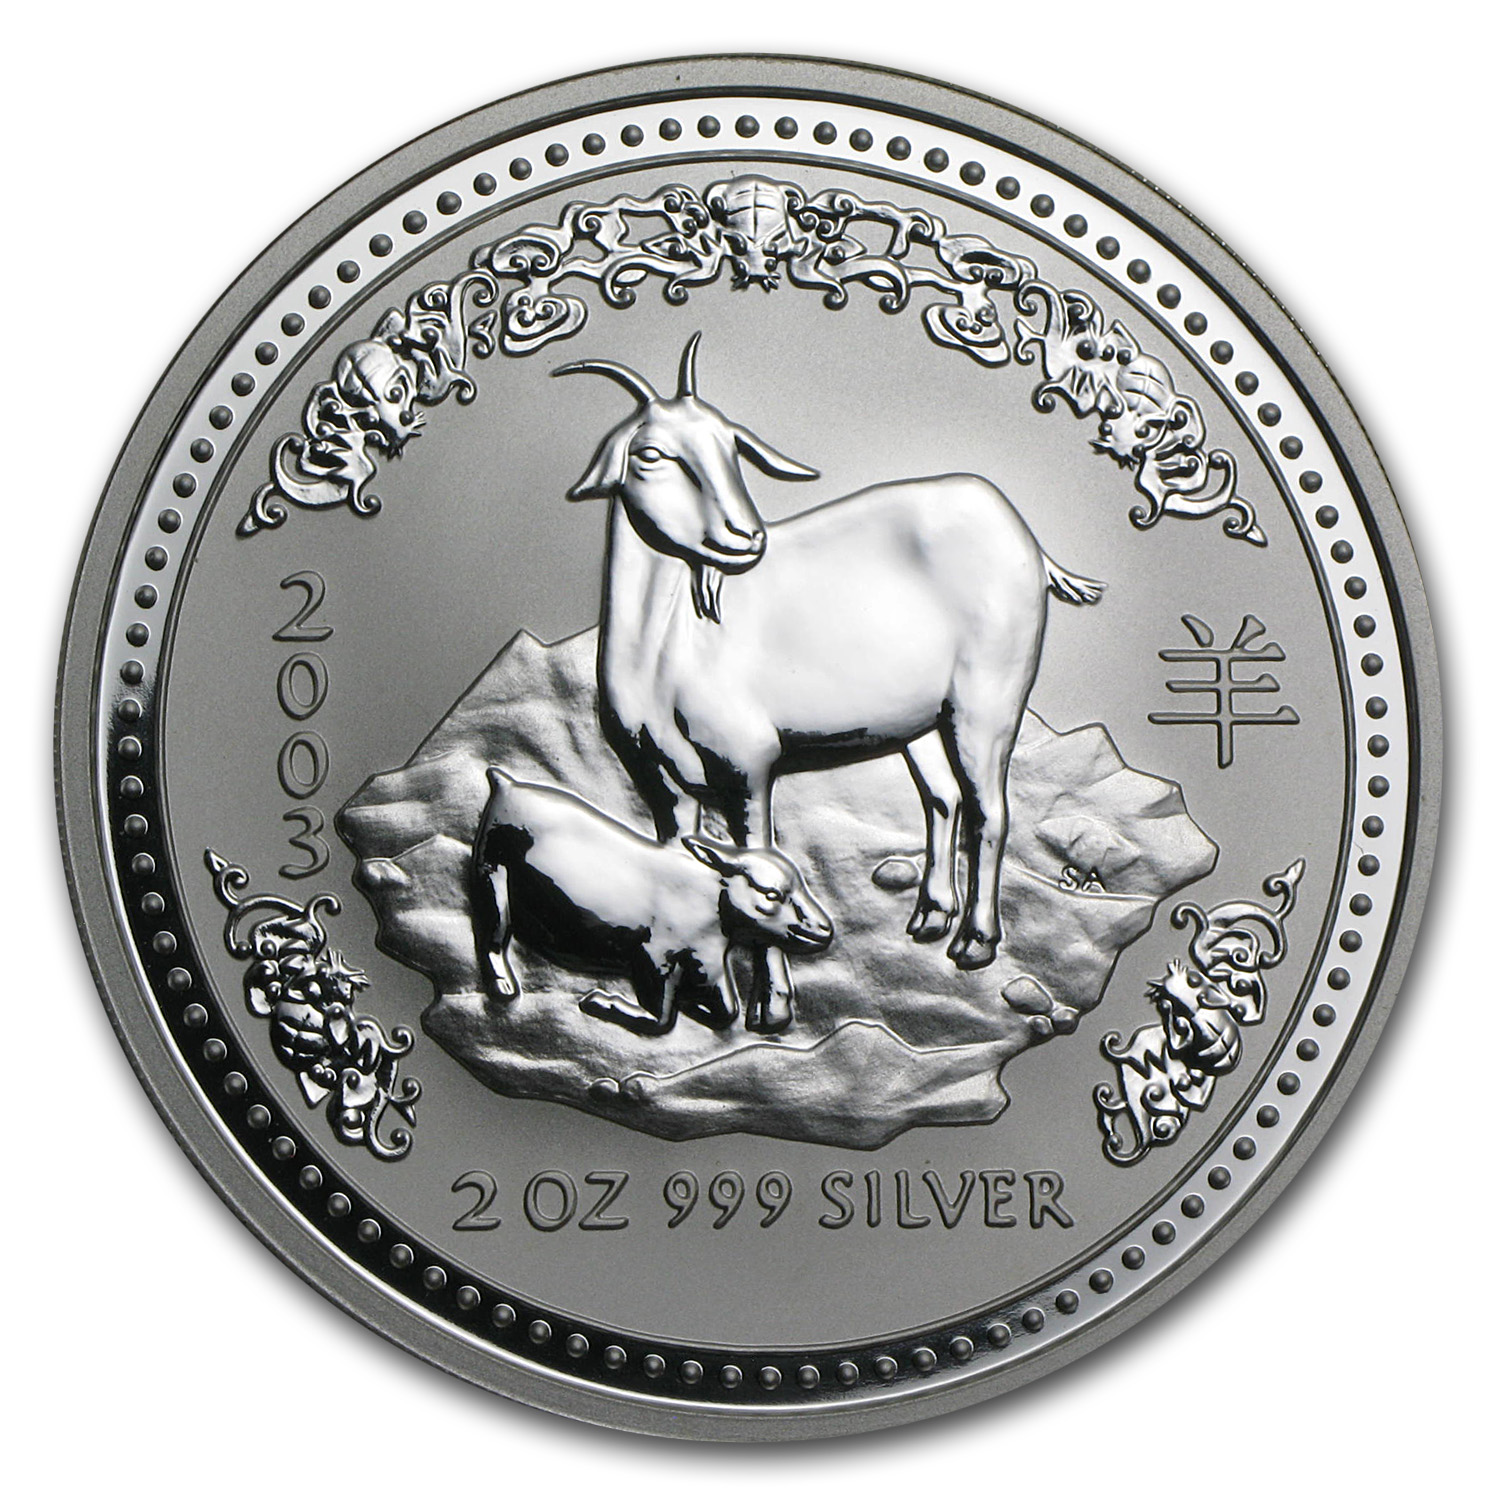 2003 Australia 2 oz Silver Year of the Goat BU